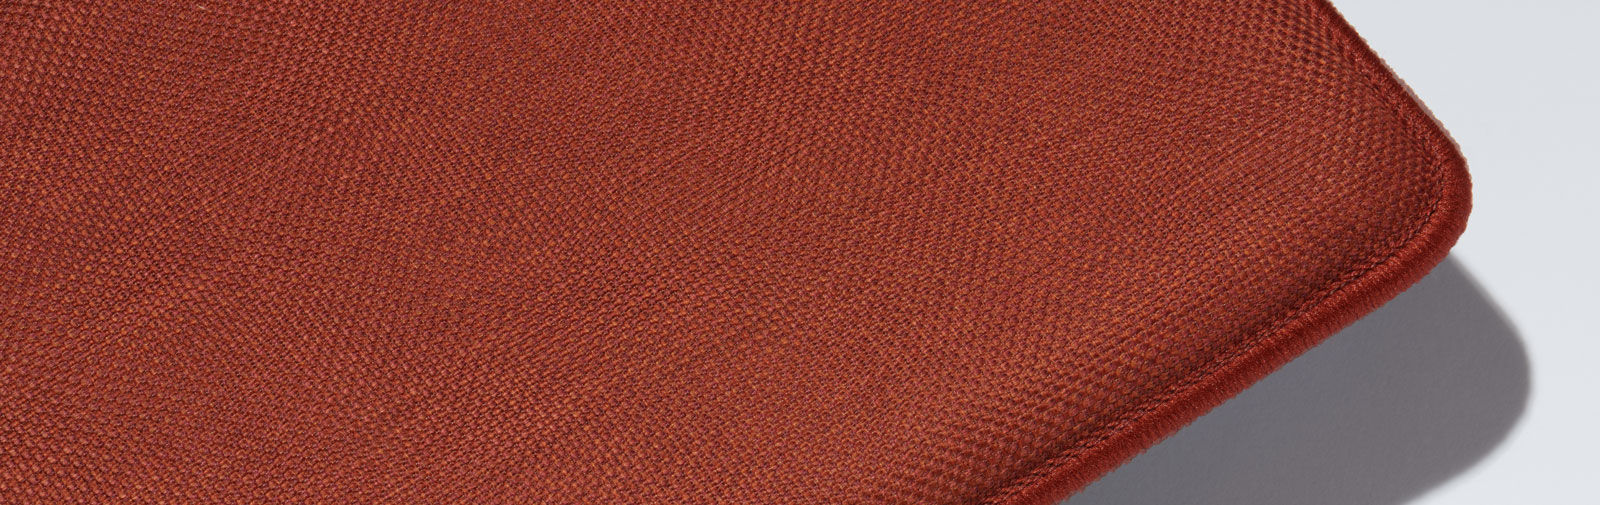 Pattern Cushion Pew Runner Bankauflage Verano Color code 651 Color russet